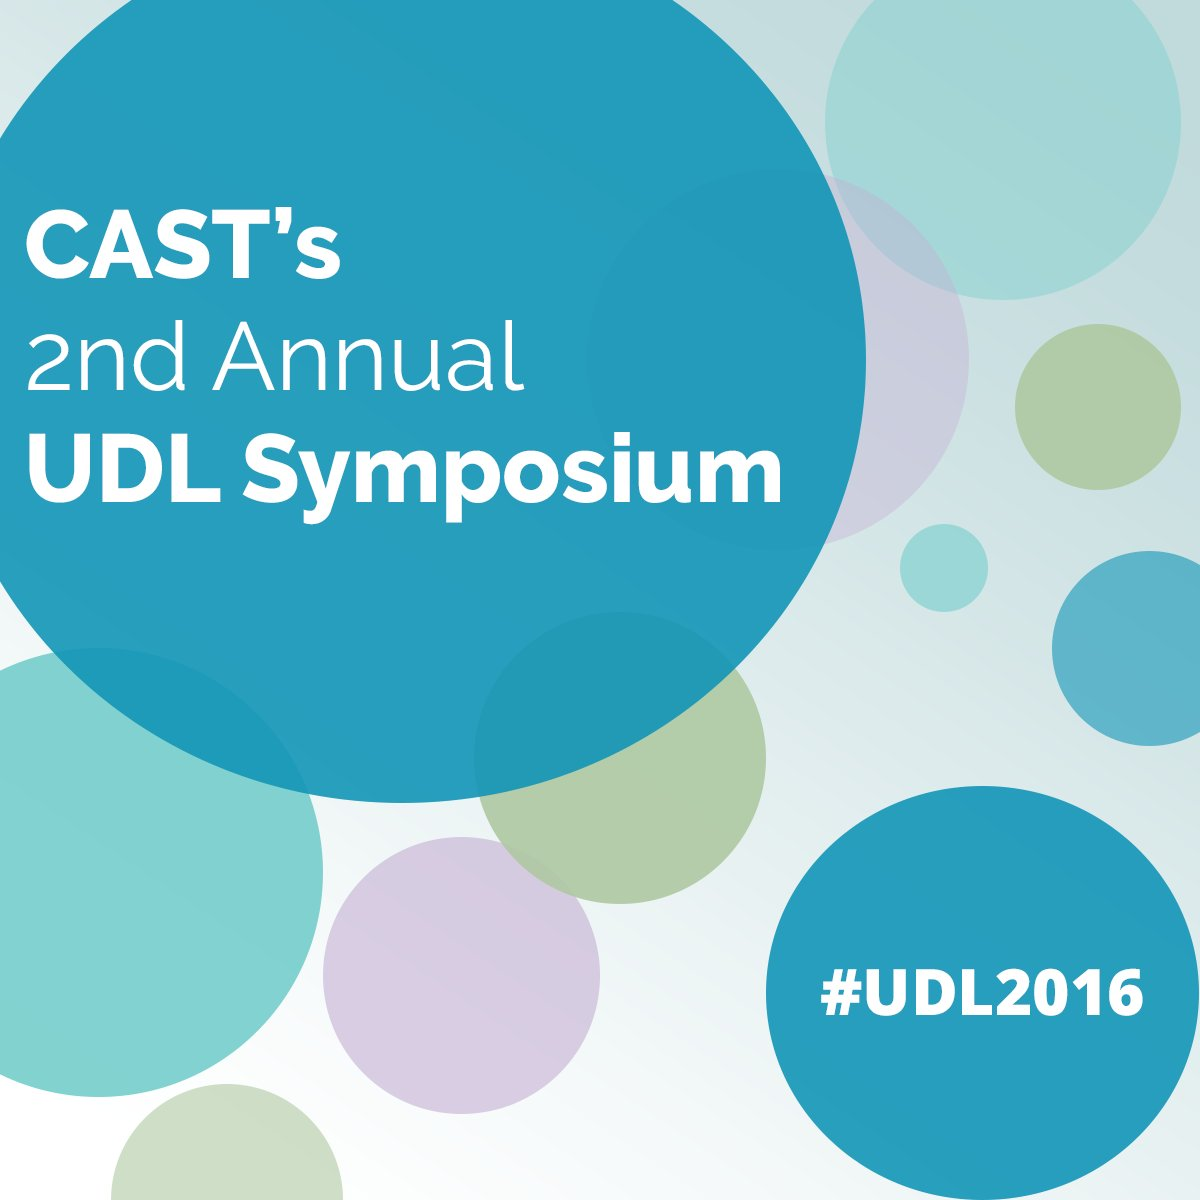 CAST's #UDL Symposium starts tomorrow! Follow along using the hashtag #UDL2016. https://t.co/ZOfHP6IDvR https://t.co/MdYGS6zZTb